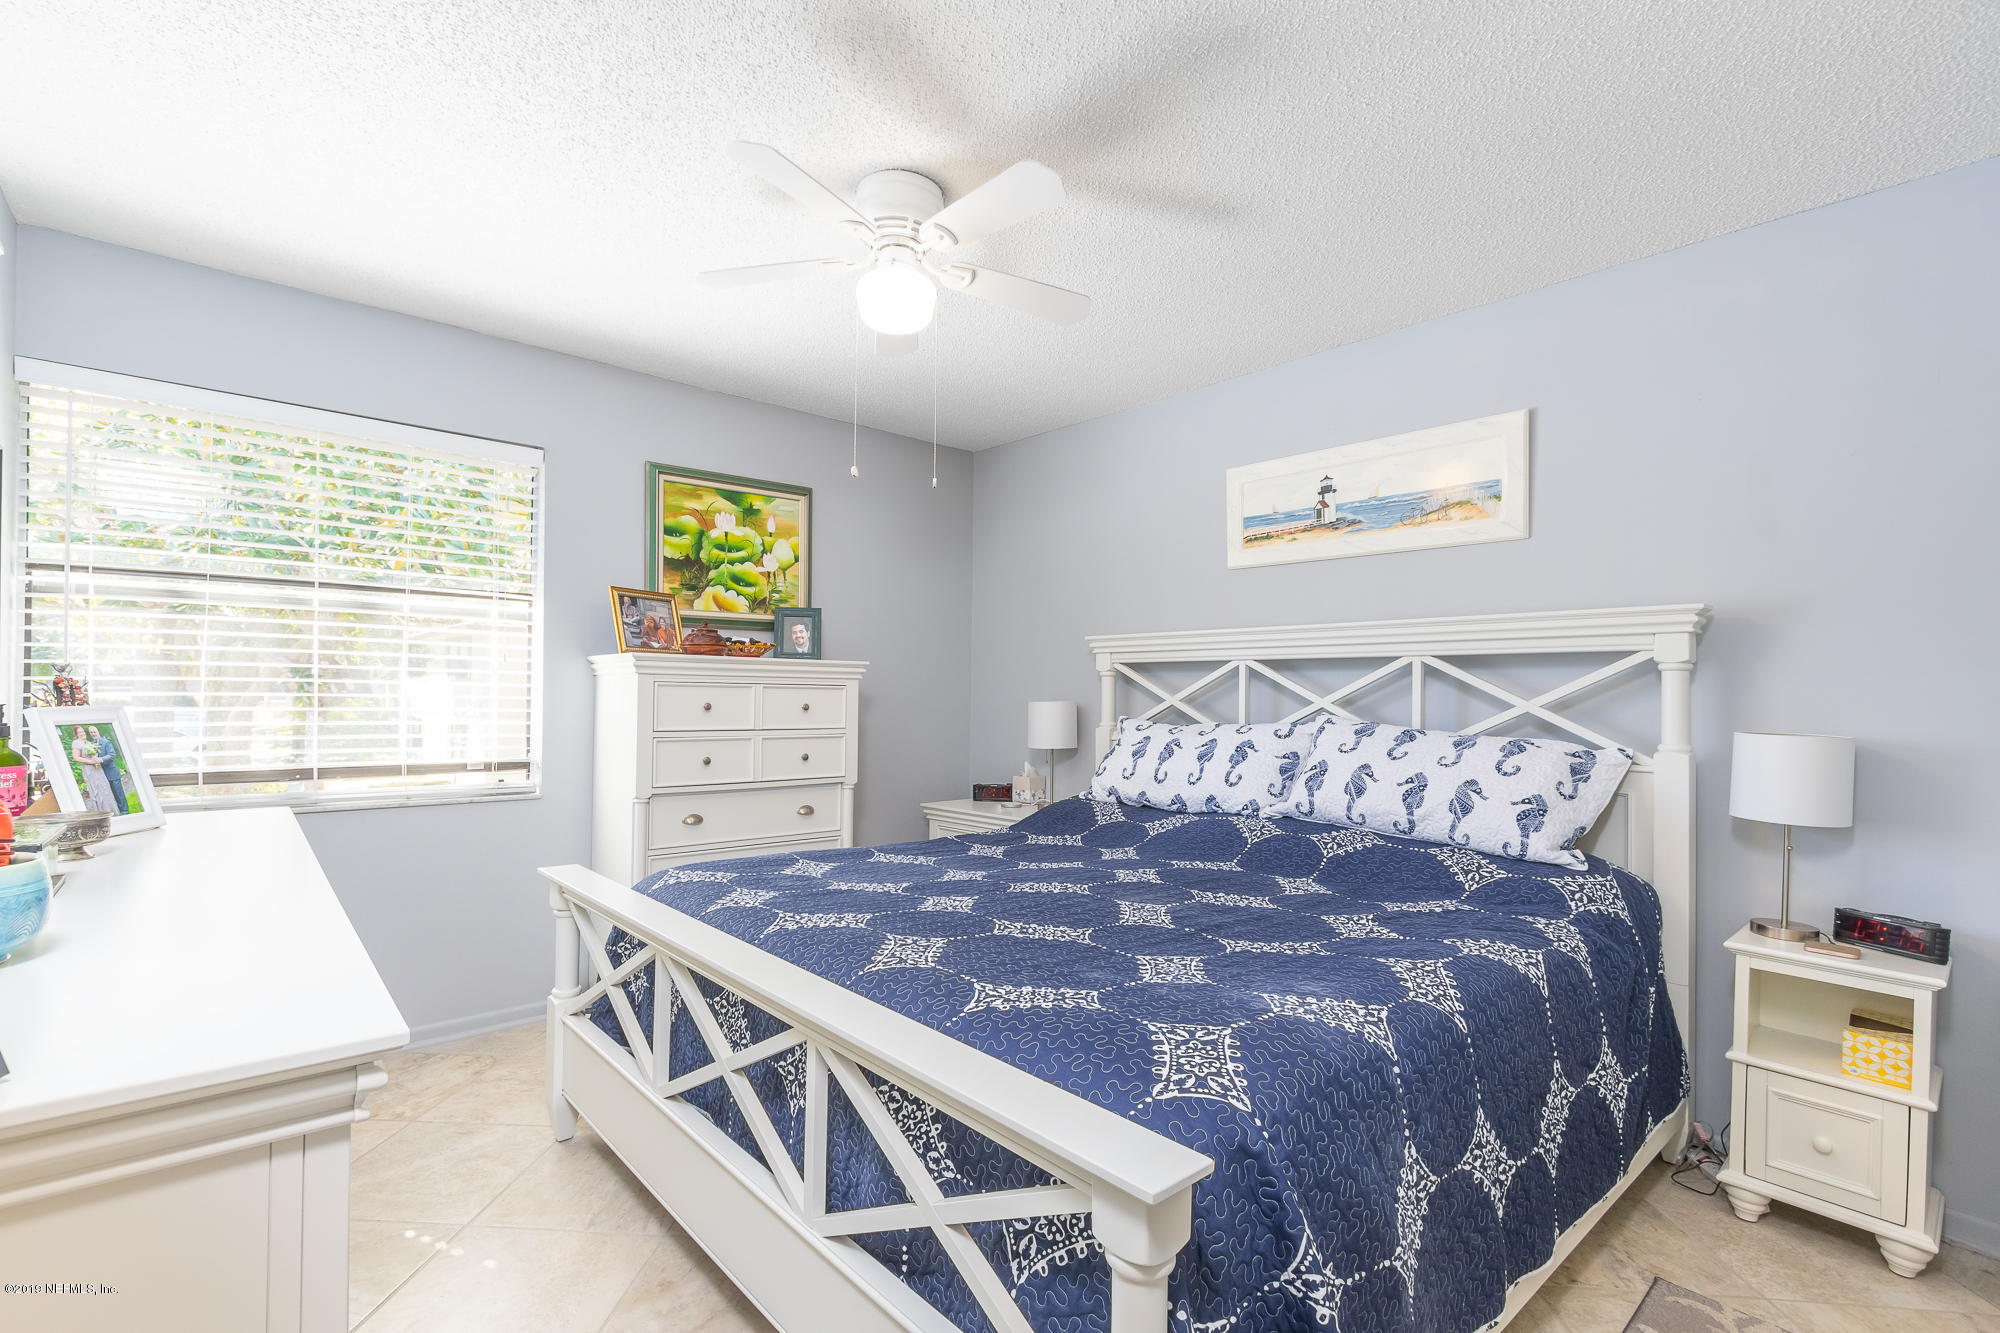 24 ANDALUSIA- ST AUGUSTINE- FLORIDA 32086, 2 Bedrooms Bedrooms, ,2 BathroomsBathrooms,Residential - condos/townhomes,For sale,ANDALUSIA,979046